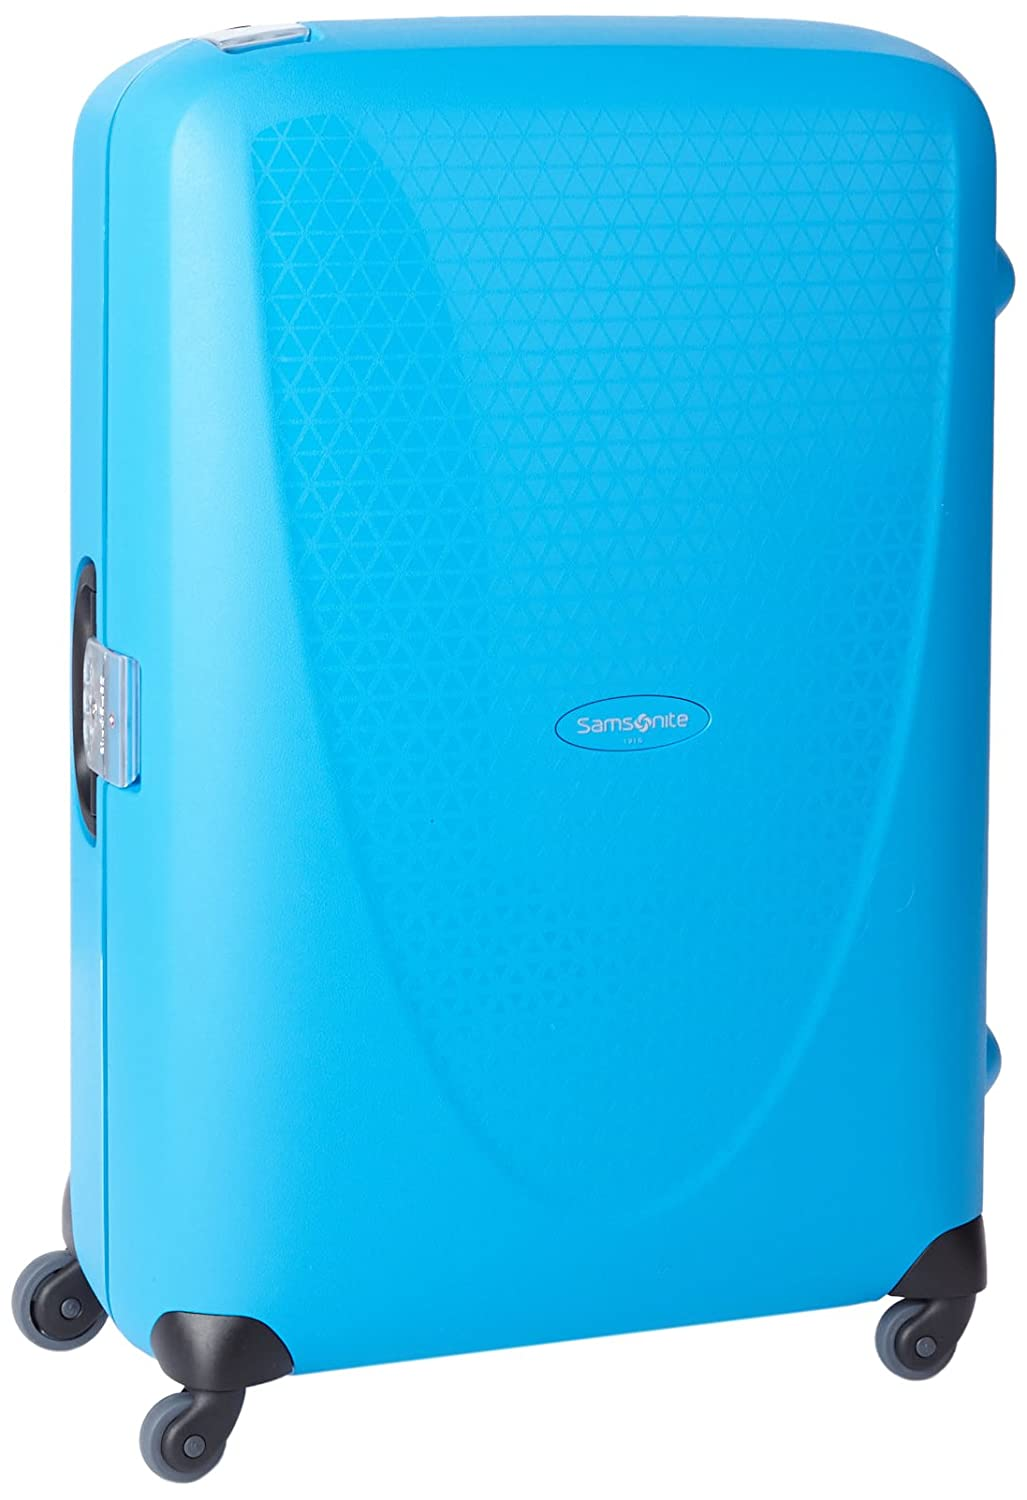 Samsonite Suitcase Termo Young, 77 cm, 88 L, Blue electric, 53395-1324